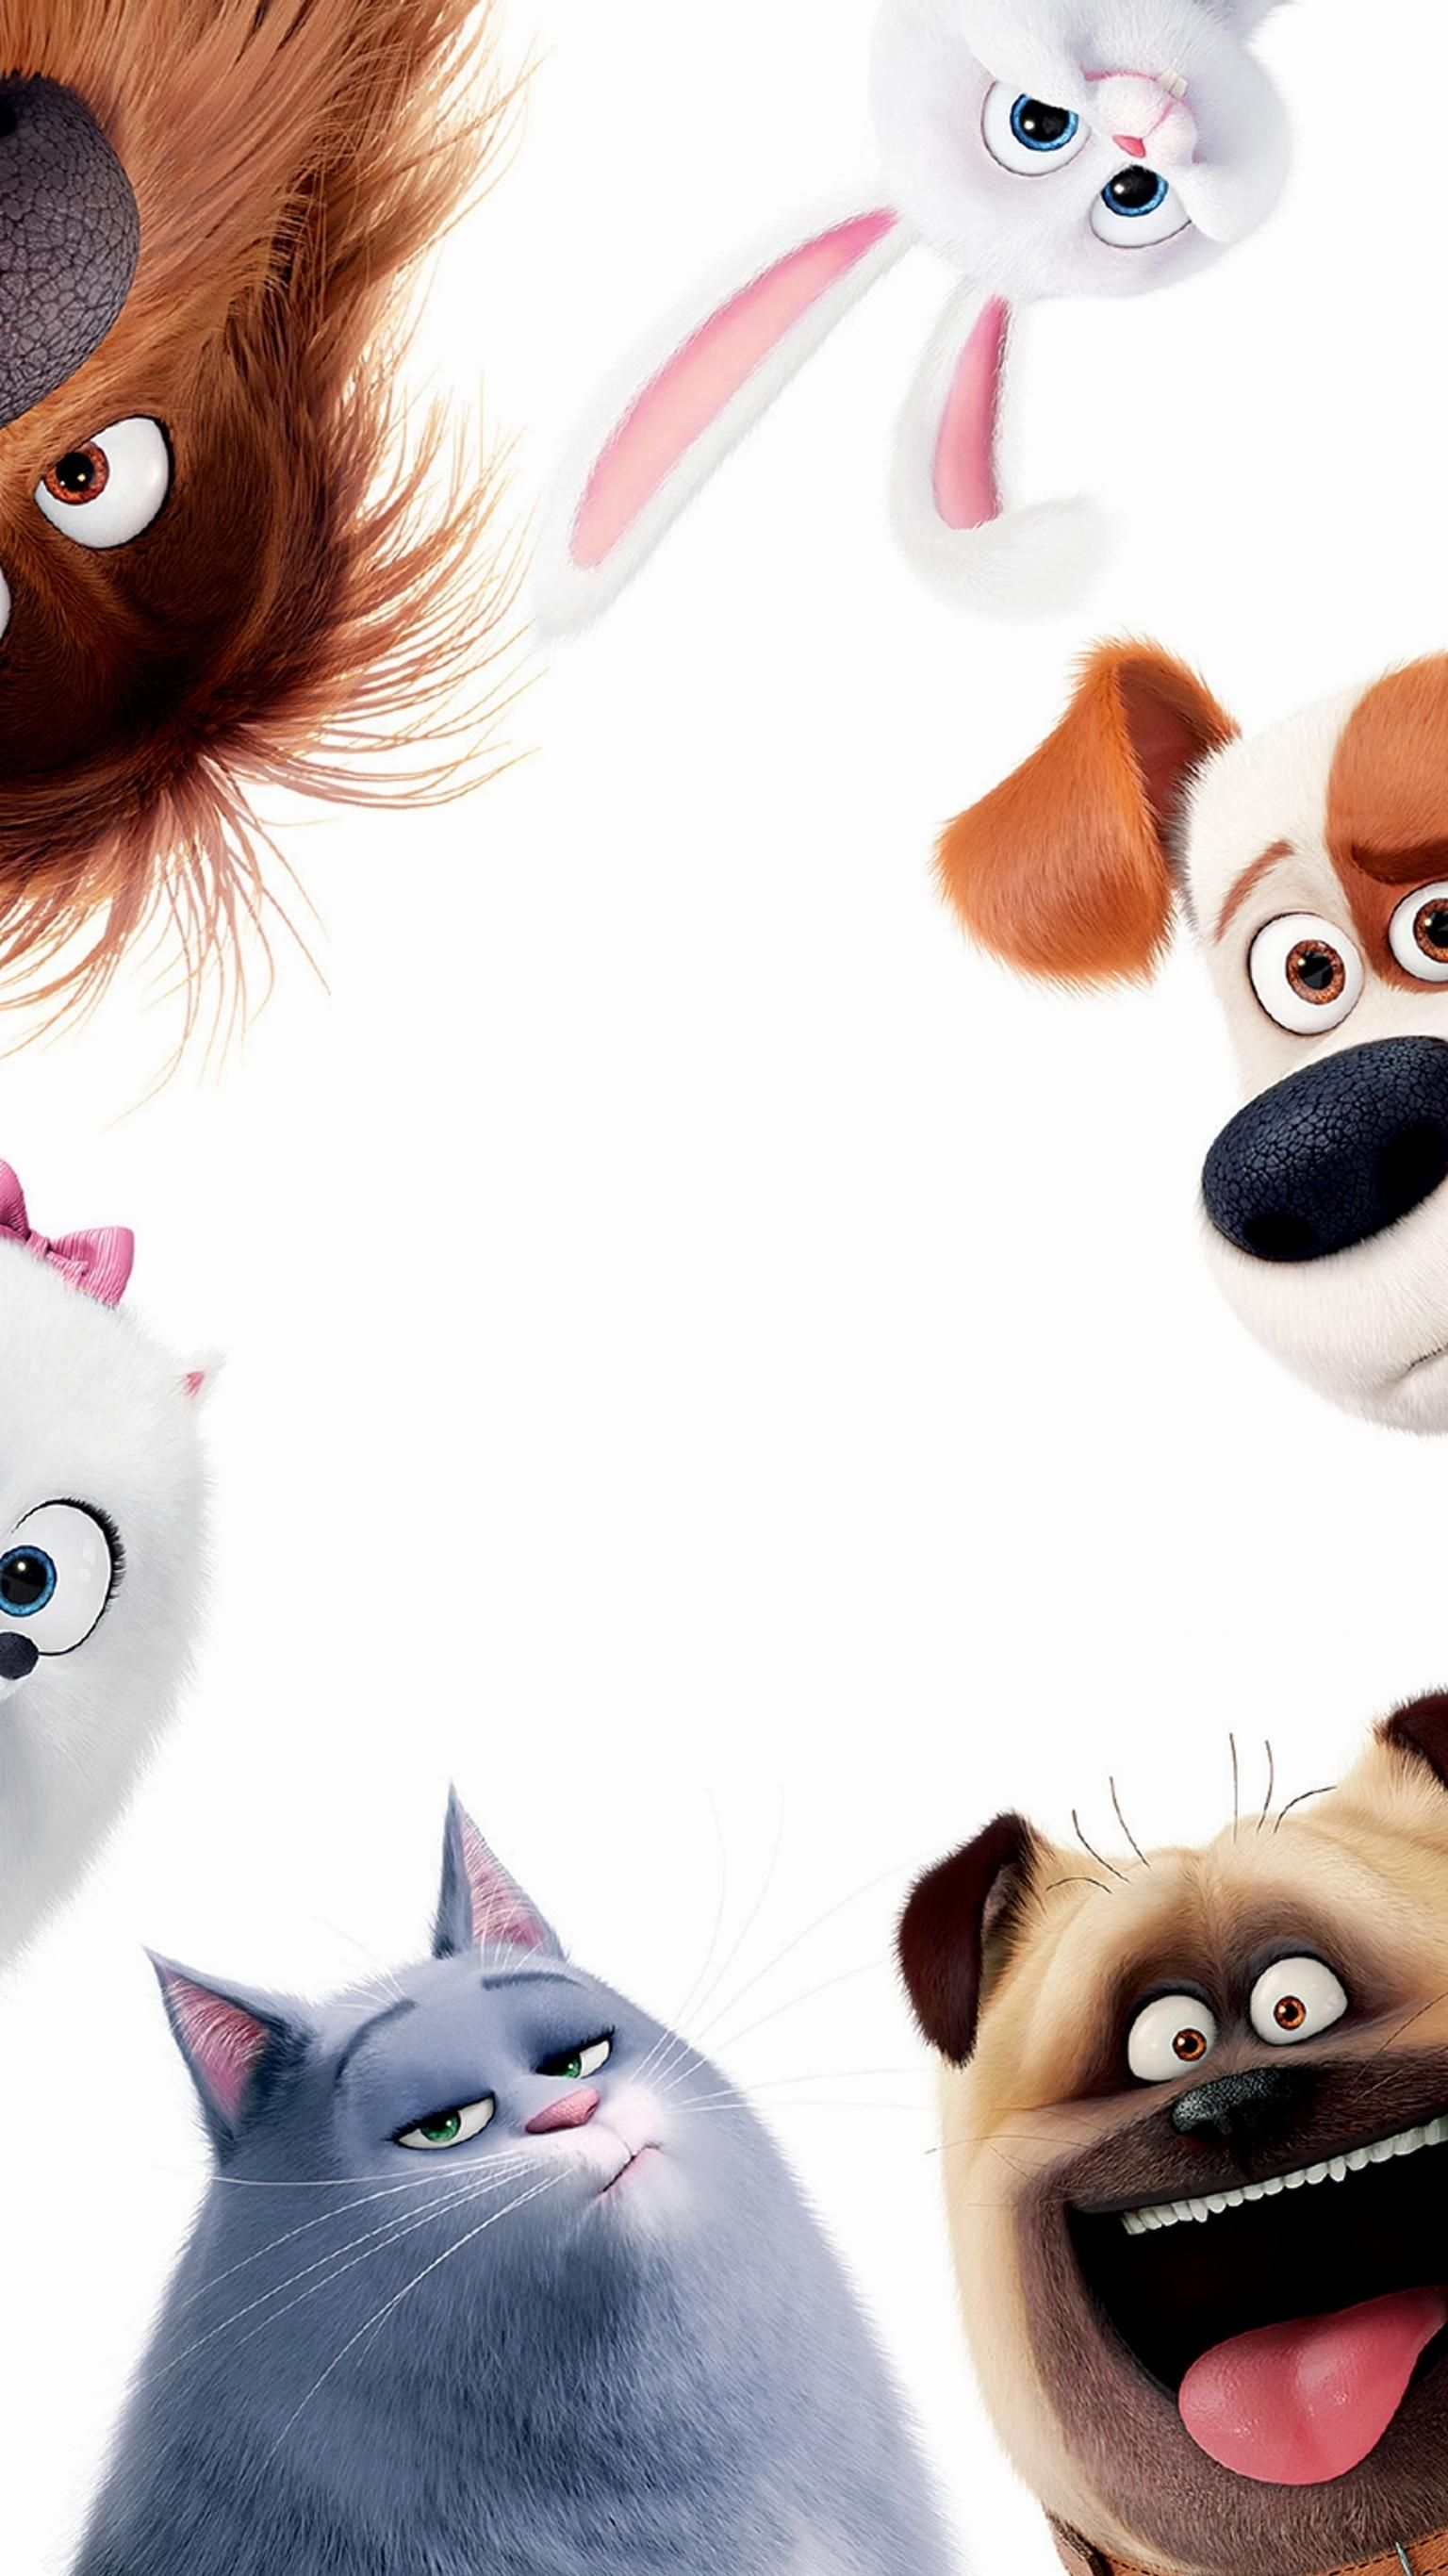 The Secret Life of Pets (2016) Phone Wallpaper Cute